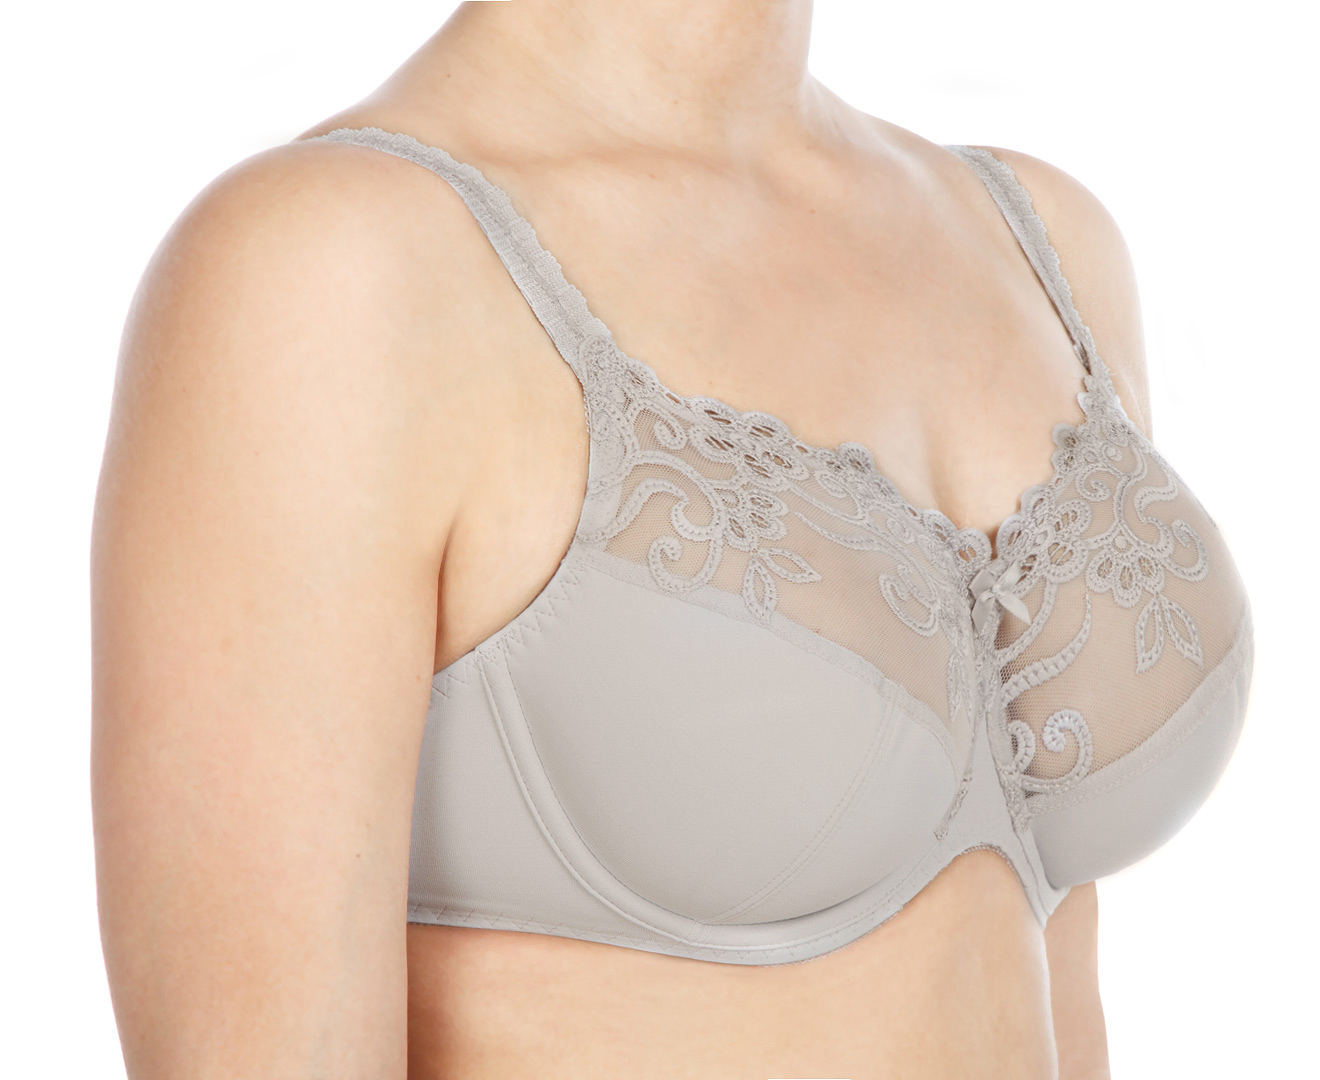 b5f20f3ca33e7 Fayreform Coral Twin Pack Underwire Bras - Pink Dogwood/Ashes Of Roses |  Catch.com.au